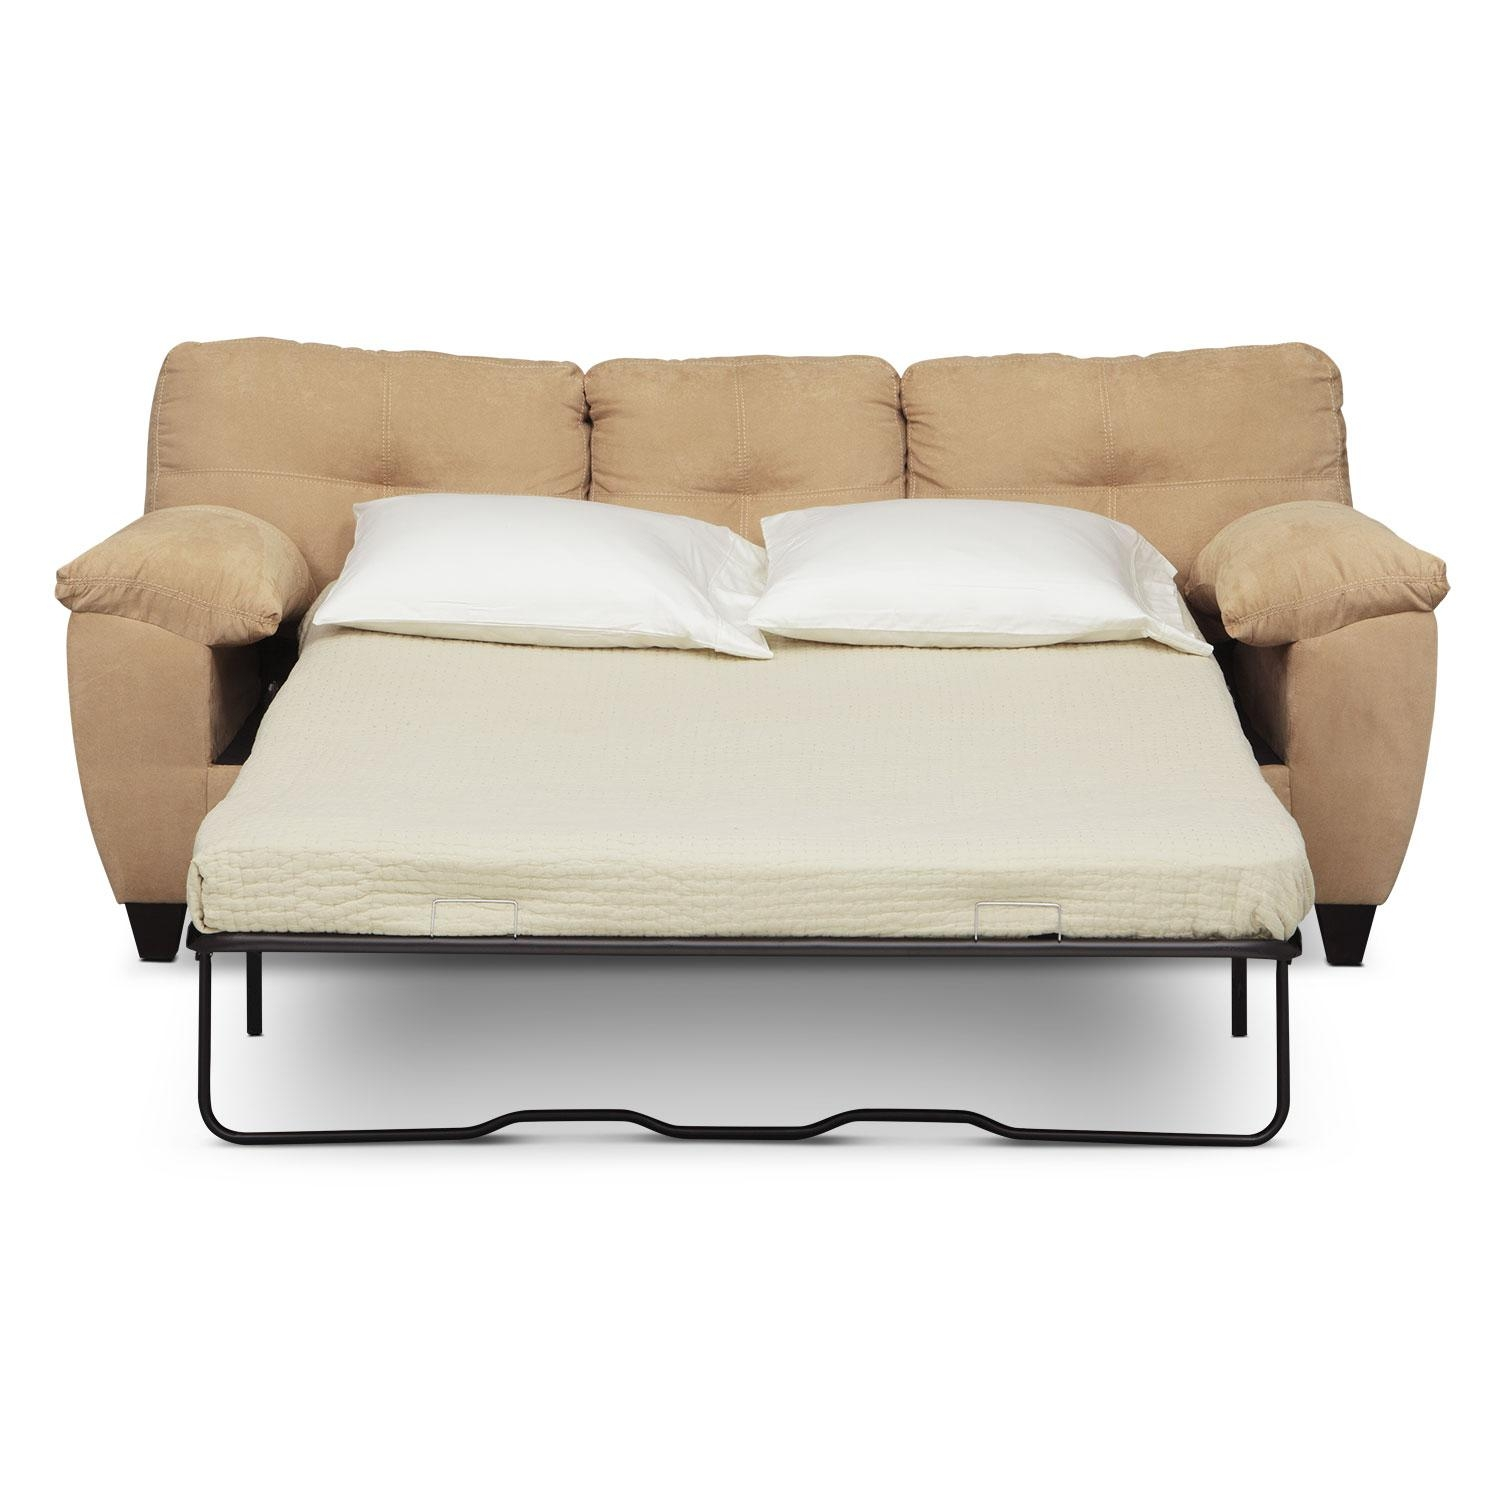 Furniture: Queen Size Simmons Sleeper Sofa For Stunning Home For Simmons Sleeper Sofas (Image 2 of 20)